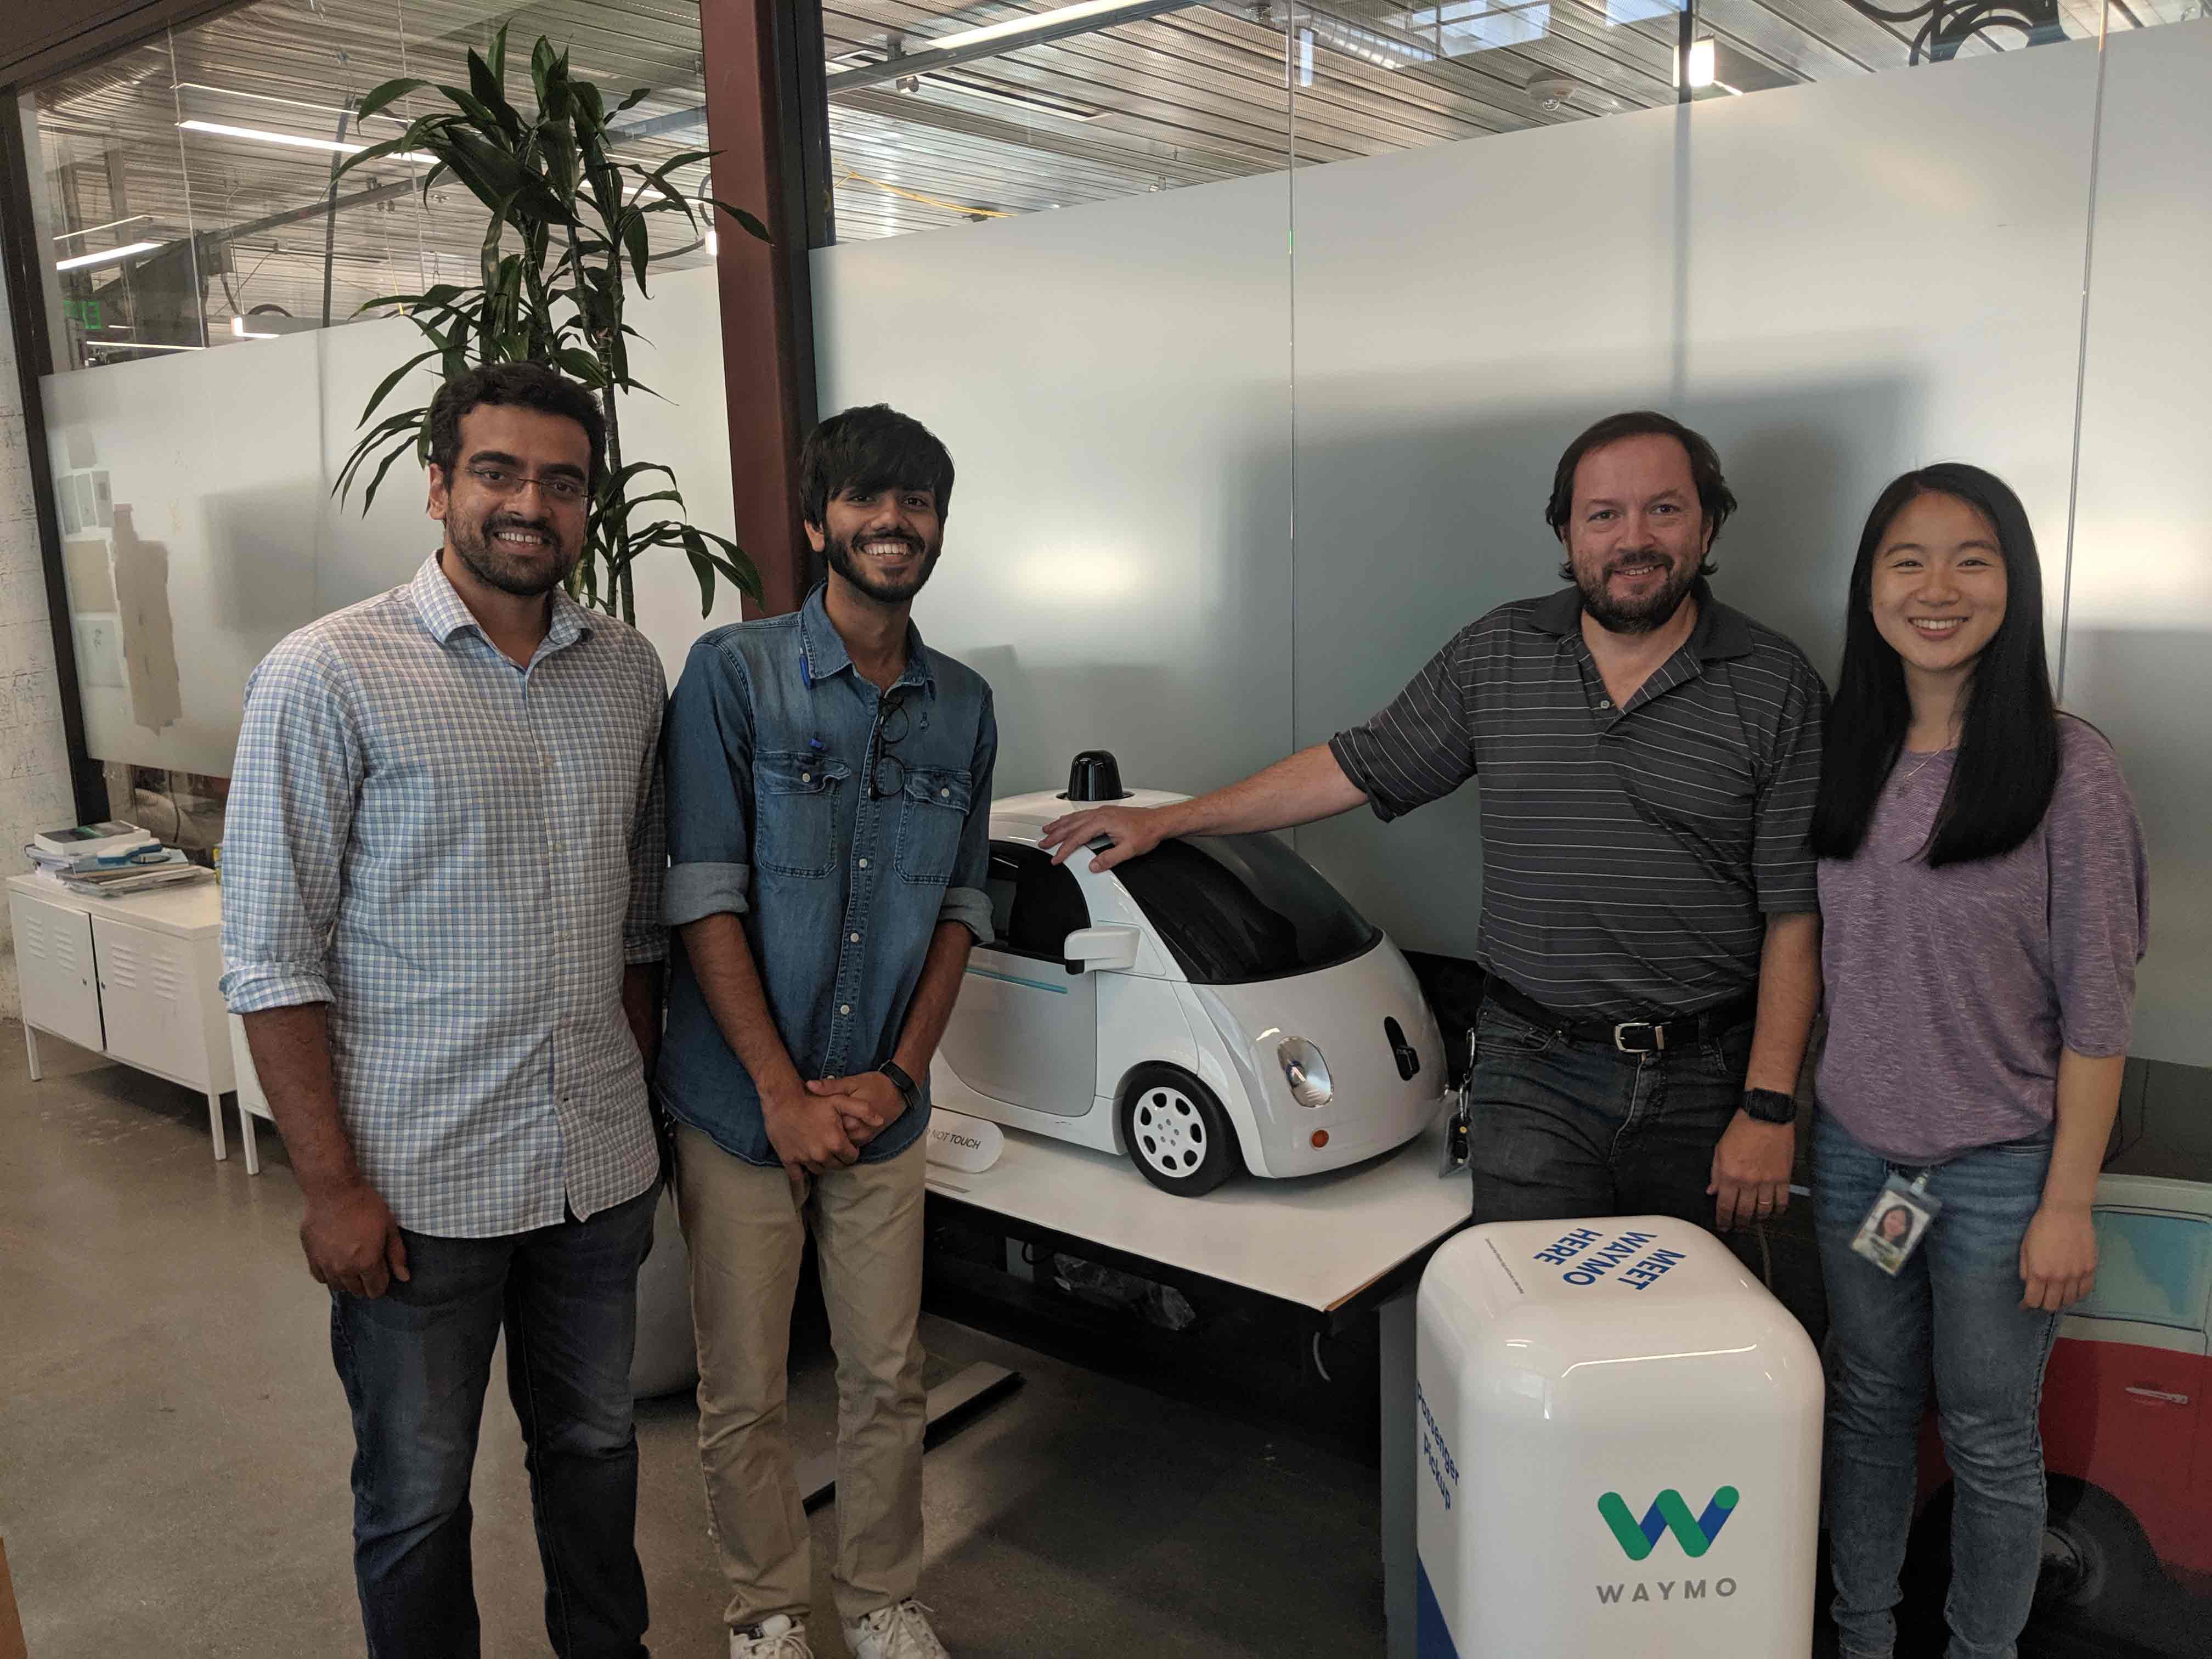 Yakeen Jain with colleagues and the Waymo Car